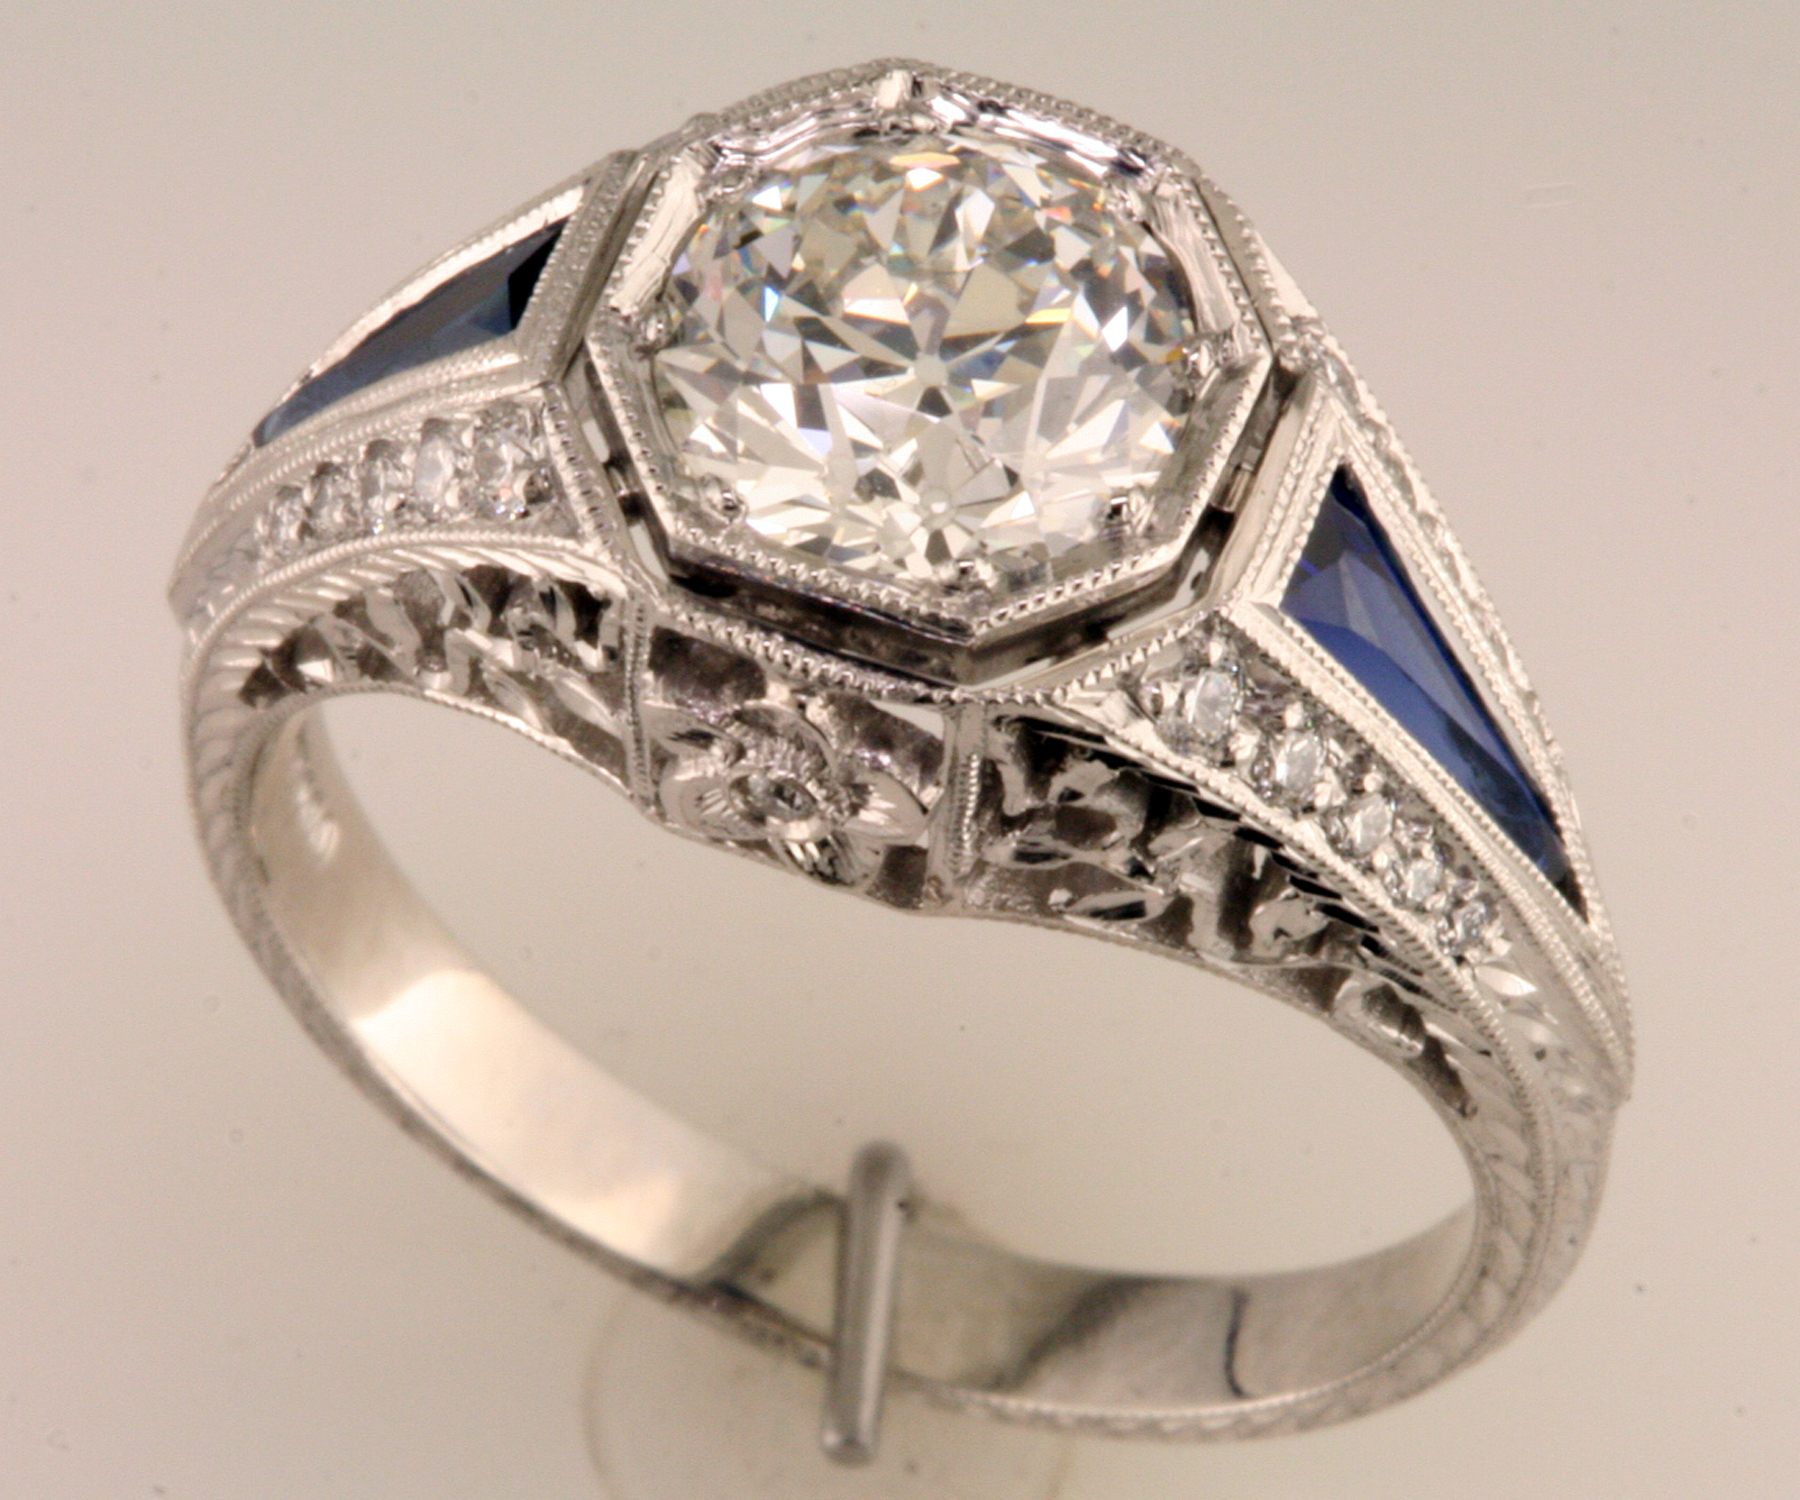 a one of a kind filigree engagement ring custom wedding rings The Finished Ring